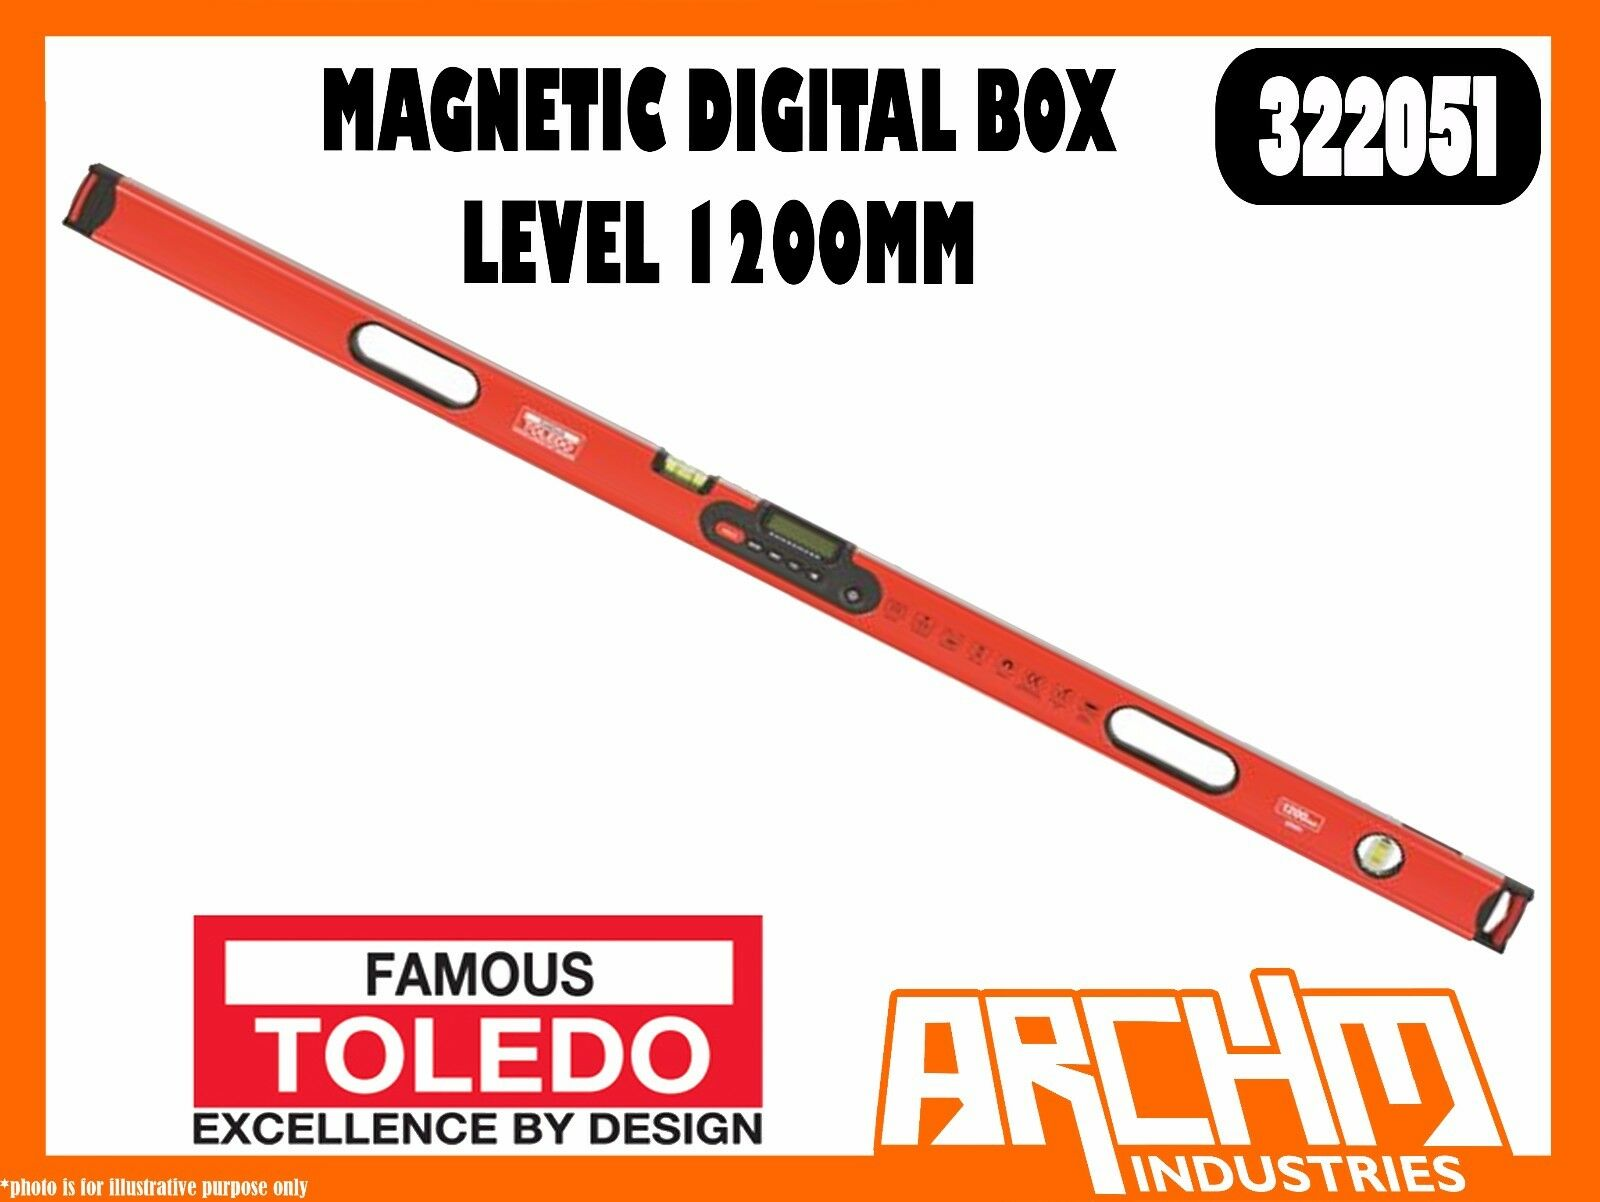 TOLEDO 322051 - MAGNETIC DIGITAL BOX LEVEL - 1200MM - ACCURATE ANGLE MEASUREMENT